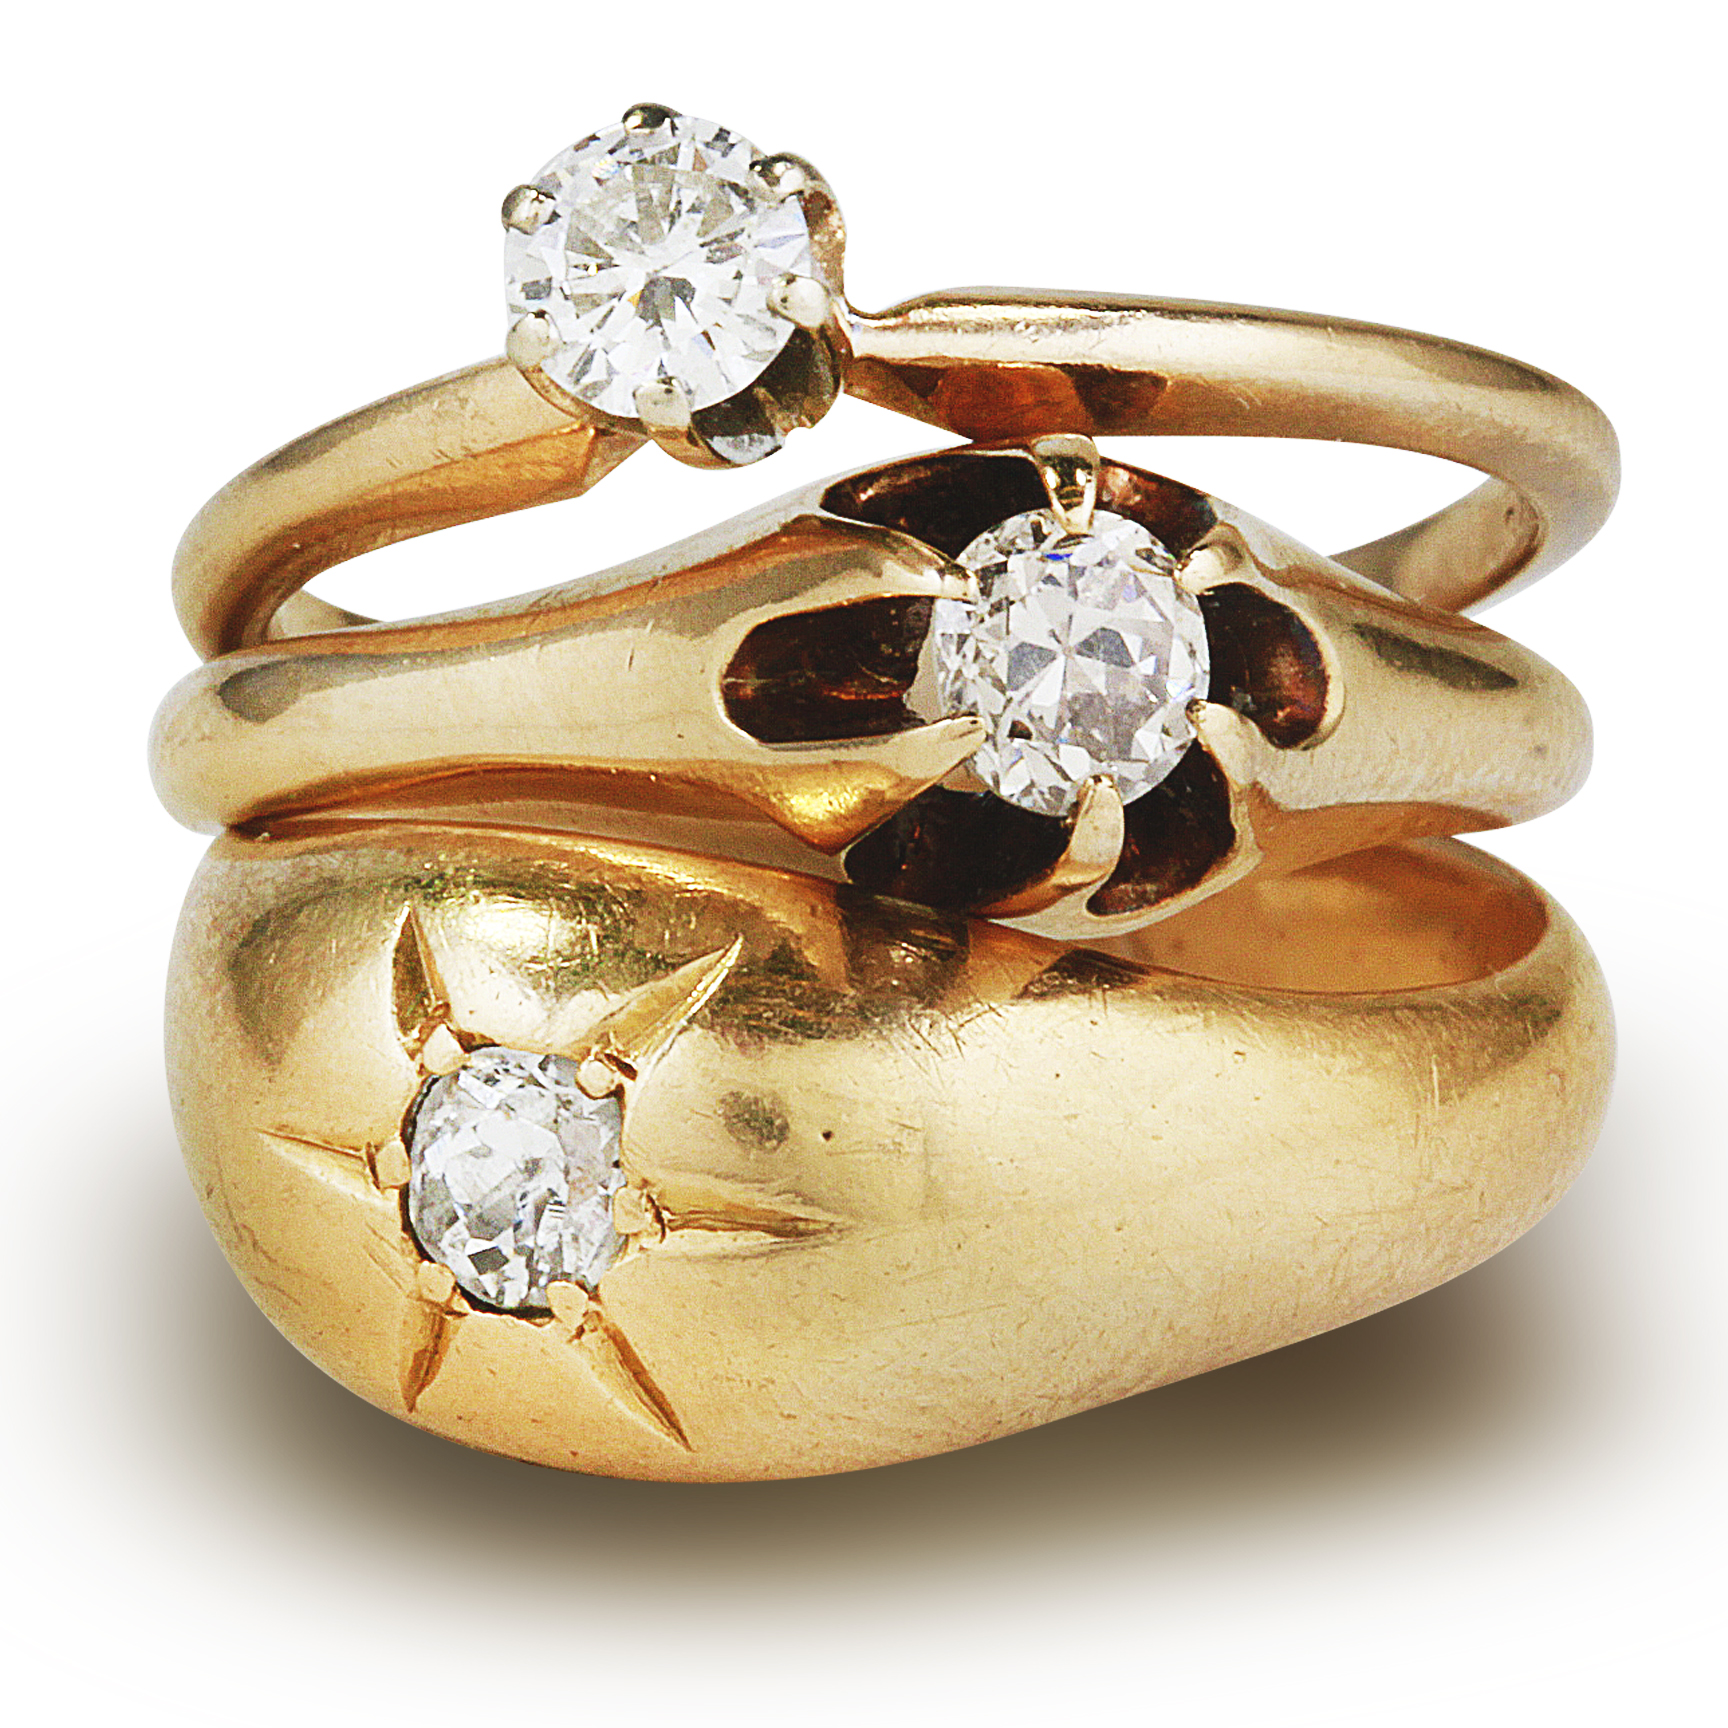 Diamond Rings in 14k Yellow Gold